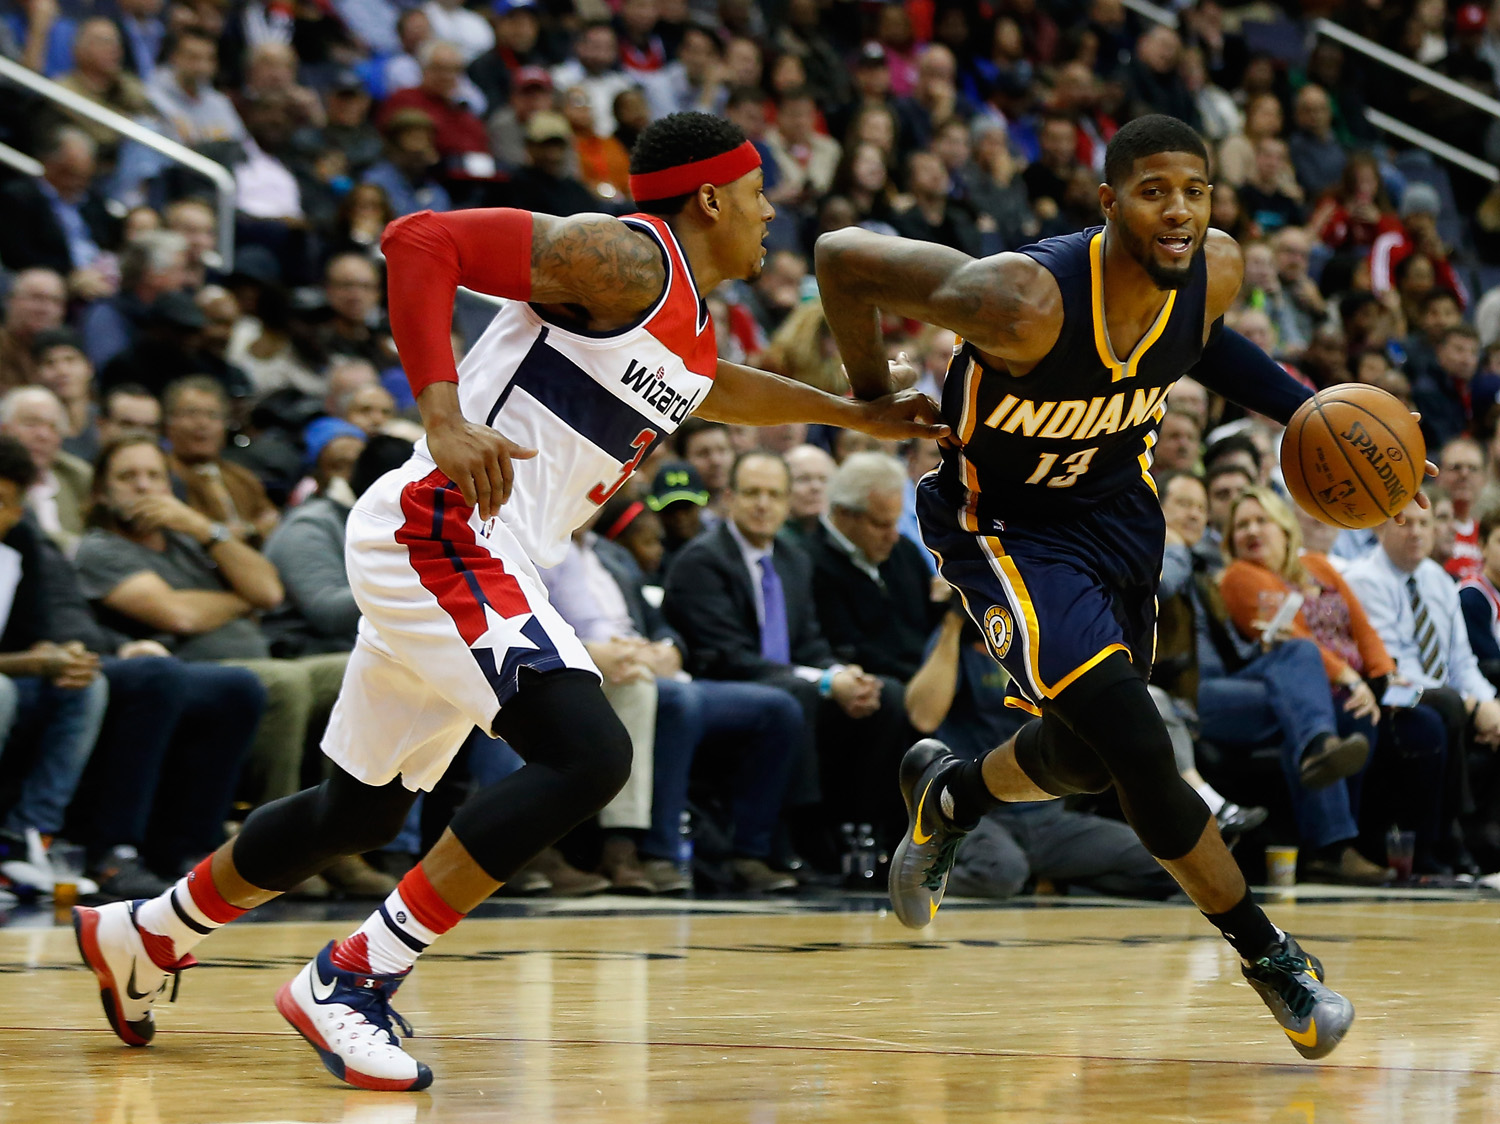 WASHINGTON, DC - NOVEMBER 24:  Paul George #13 of the Indiana Pacers drives around Bradley Beal #3 of the Washington Wizards in the second half at Verizon Center on November 24, 2015 in Washington, DC. NOTE TO USER: User expressly acknowledges and agrees that, by downloading and or using this photograph, User is consenting to the terms and conditions of the Getty Images License Agreement.  (Photo by Rob Carr/Getty Images)